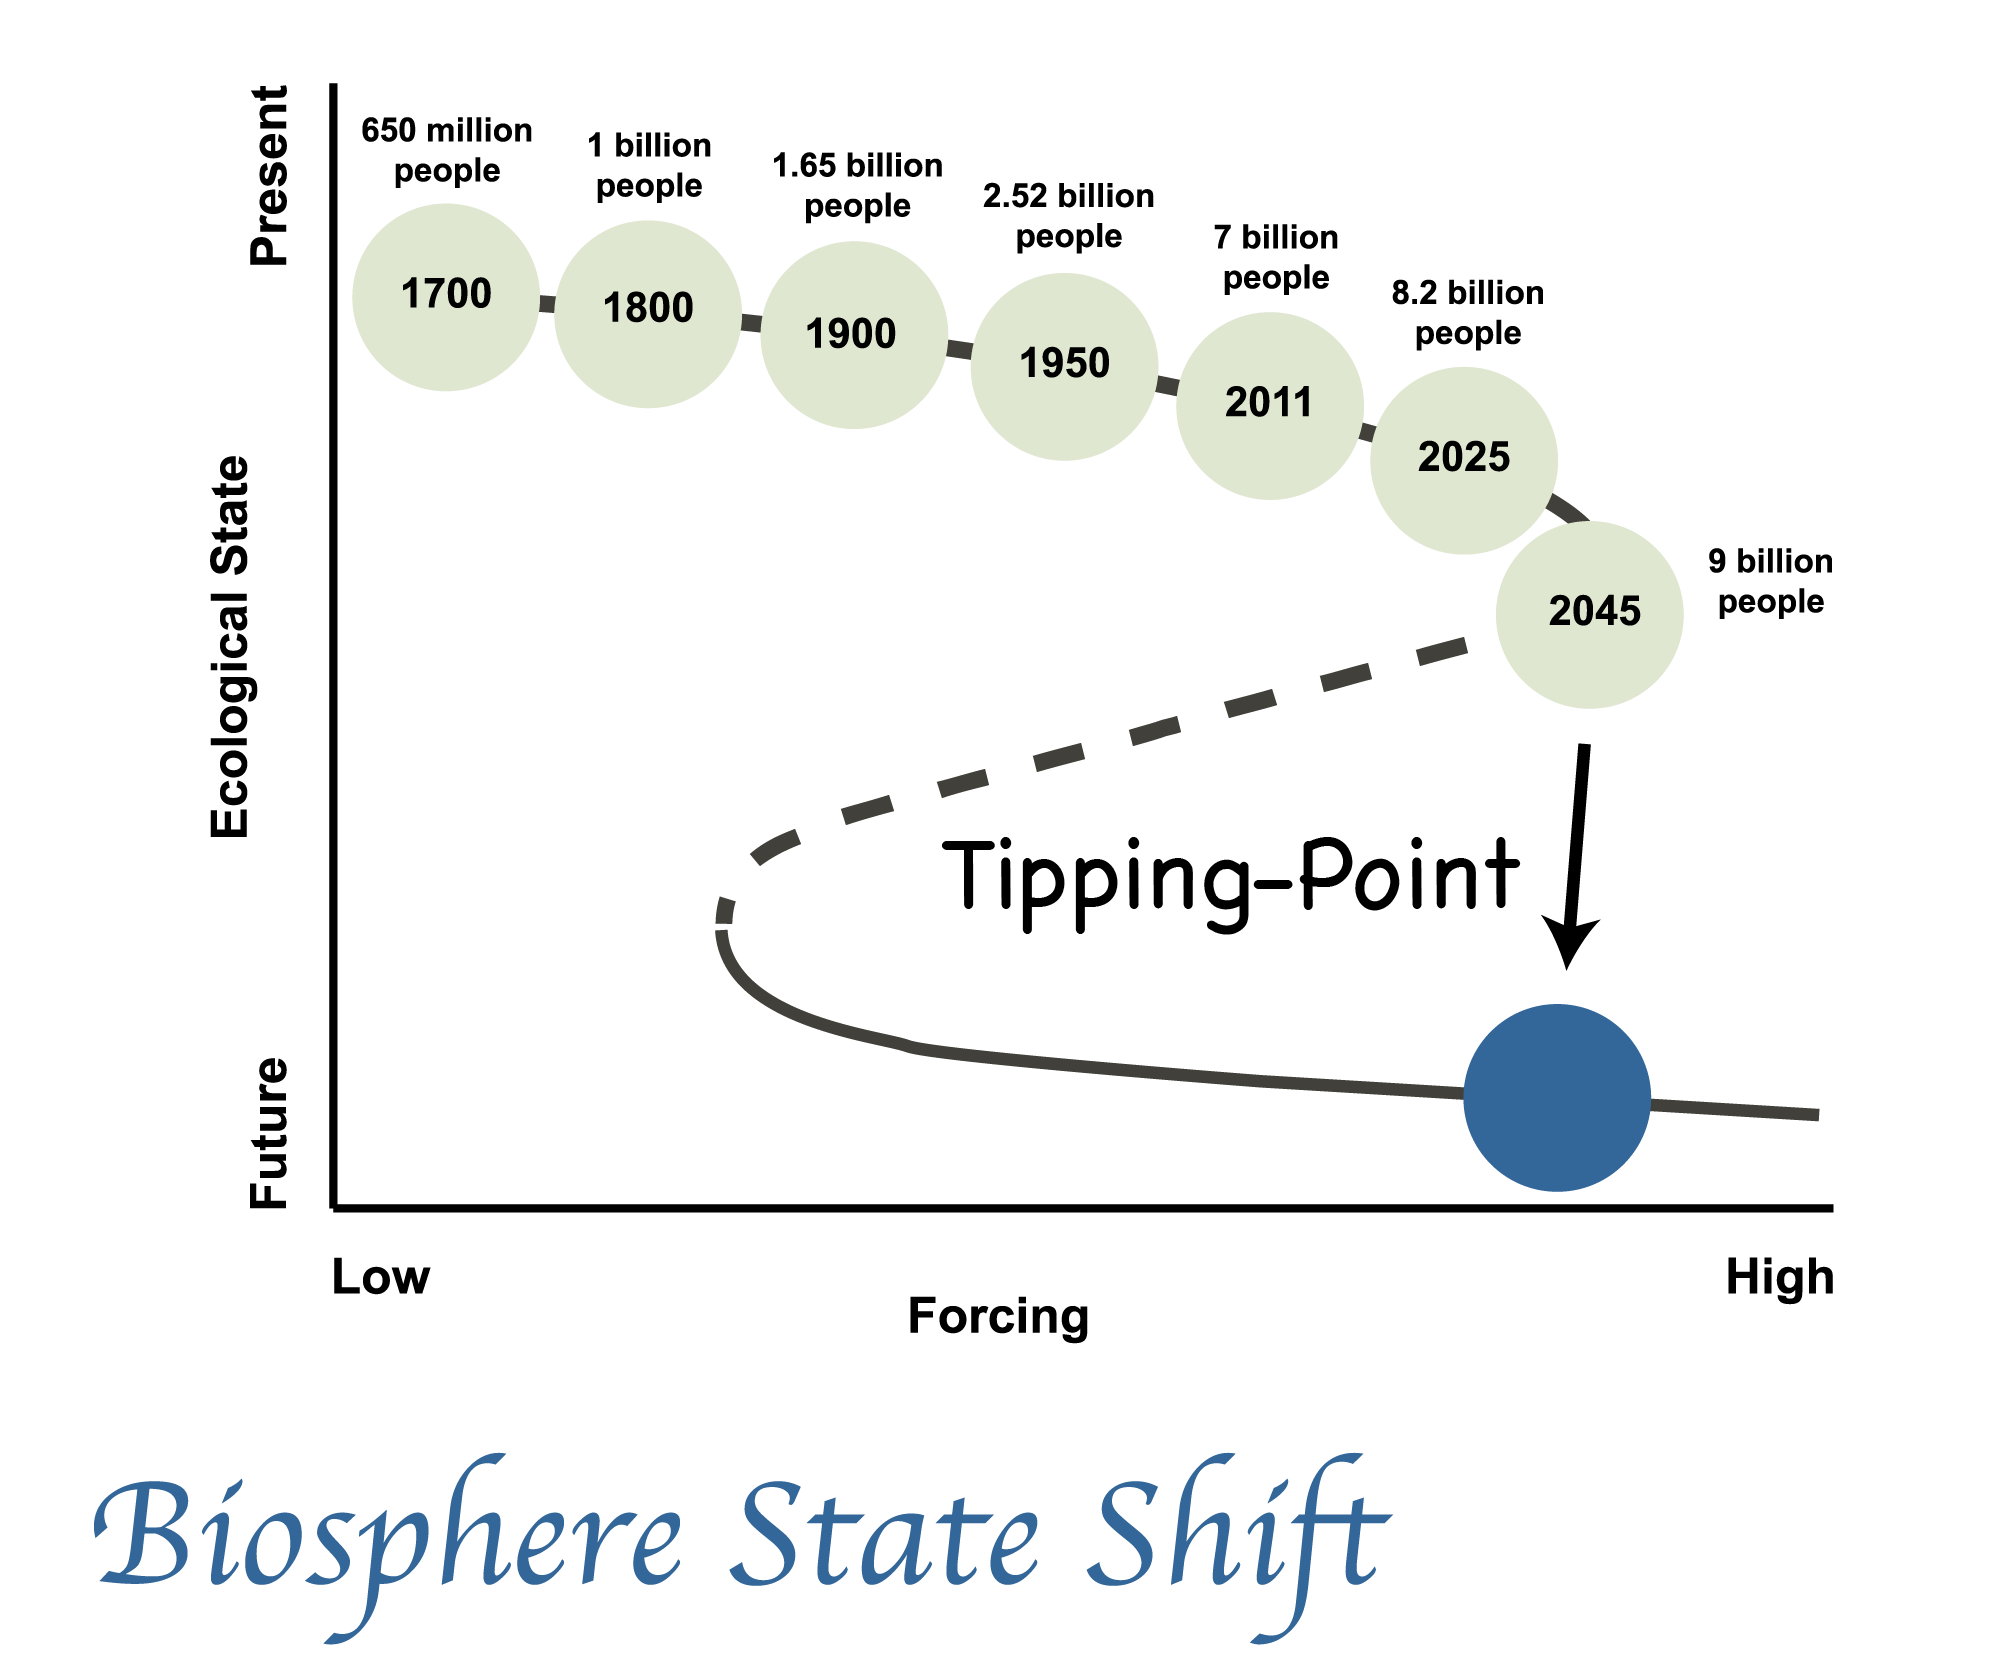 Biosphere state shift